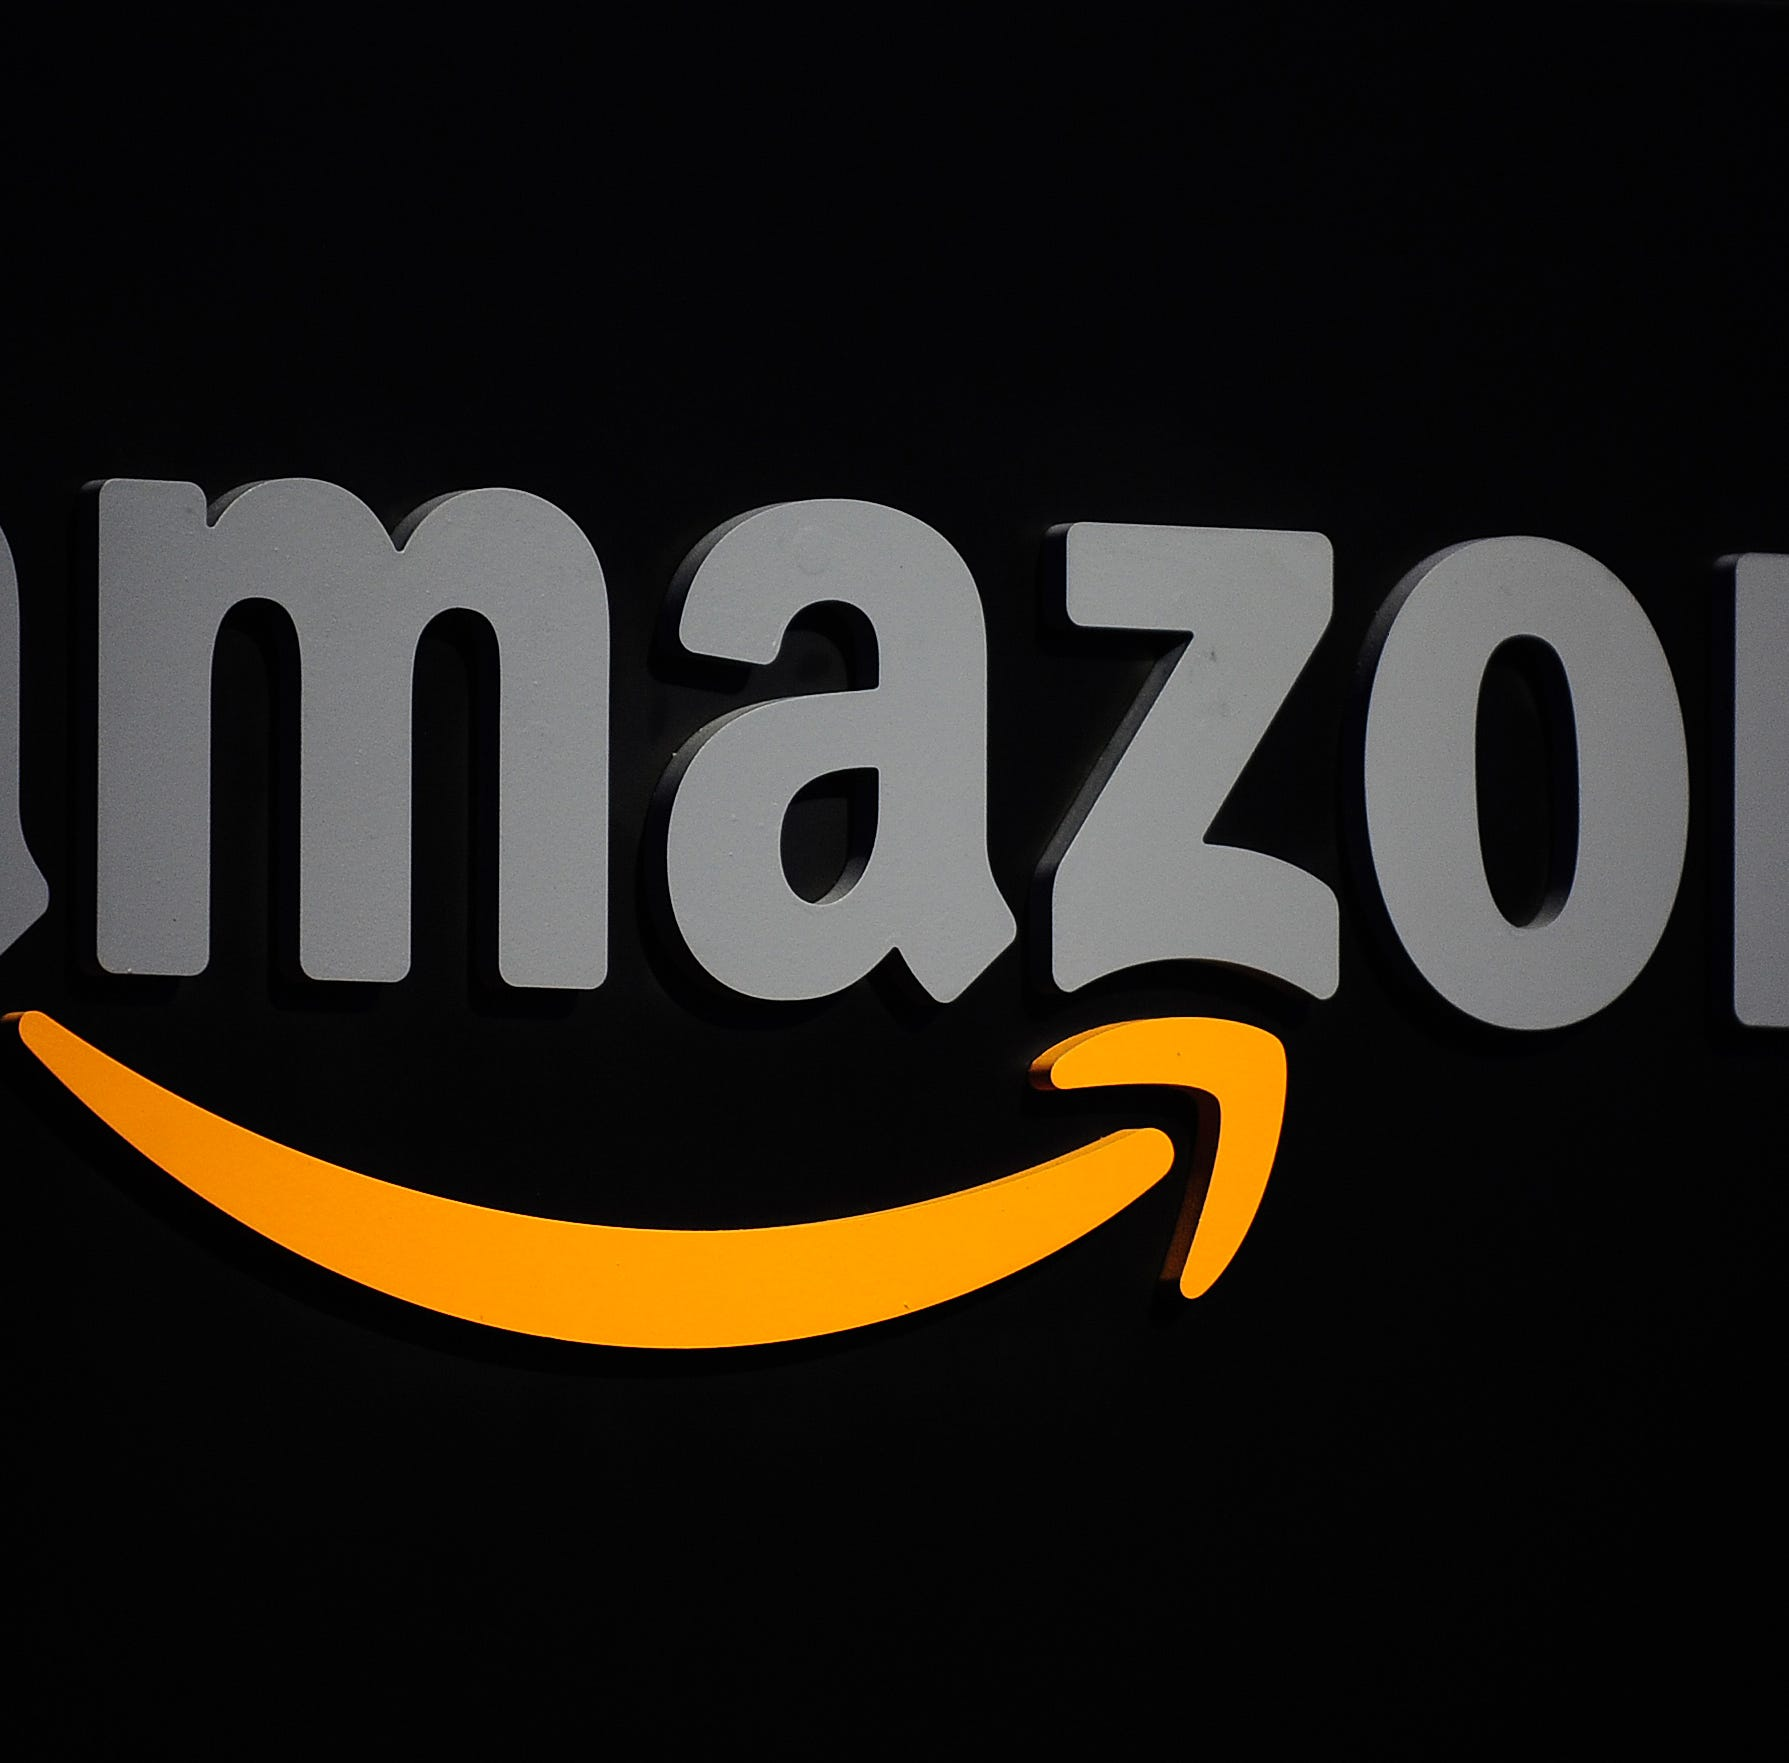 Amazon Drive is hosting terrorist content. Here's what Jeff Bezos should do about it.